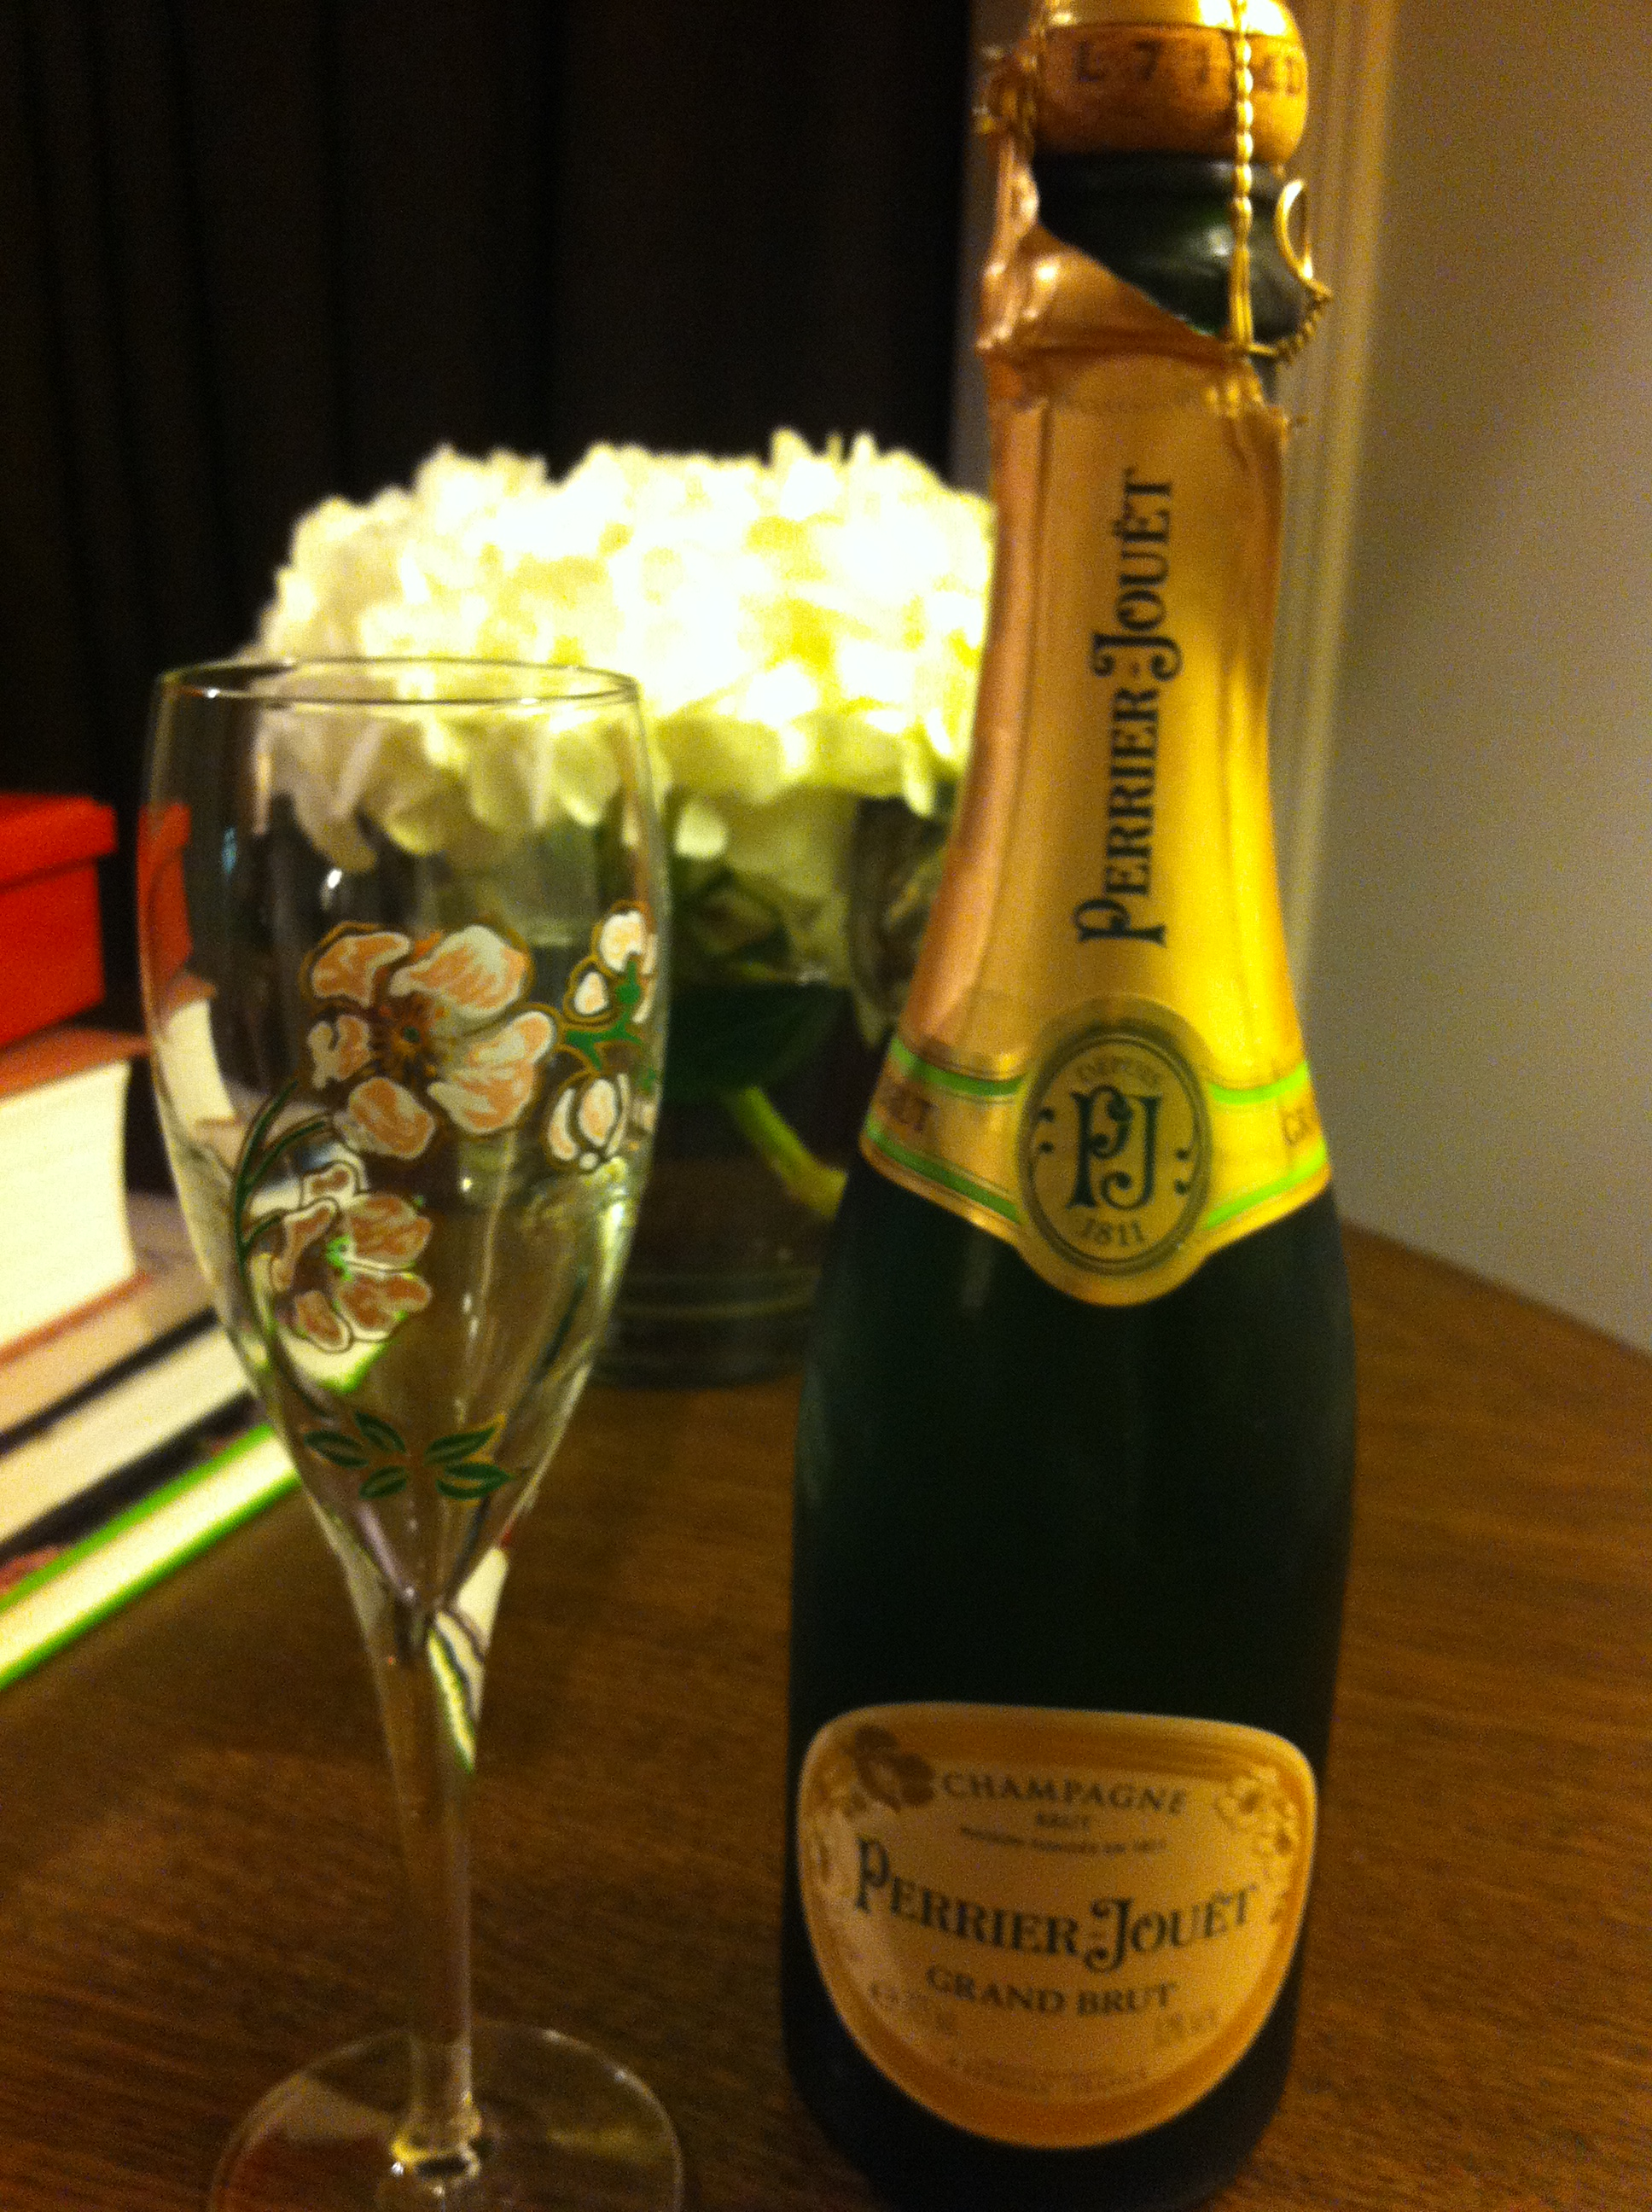 After a good workout in the hotel's fitness centre and a shower in the luxury bathroom, into the fluffy bathrobe andopened thePerrier Jouet Grand Brut from the mini bar!!